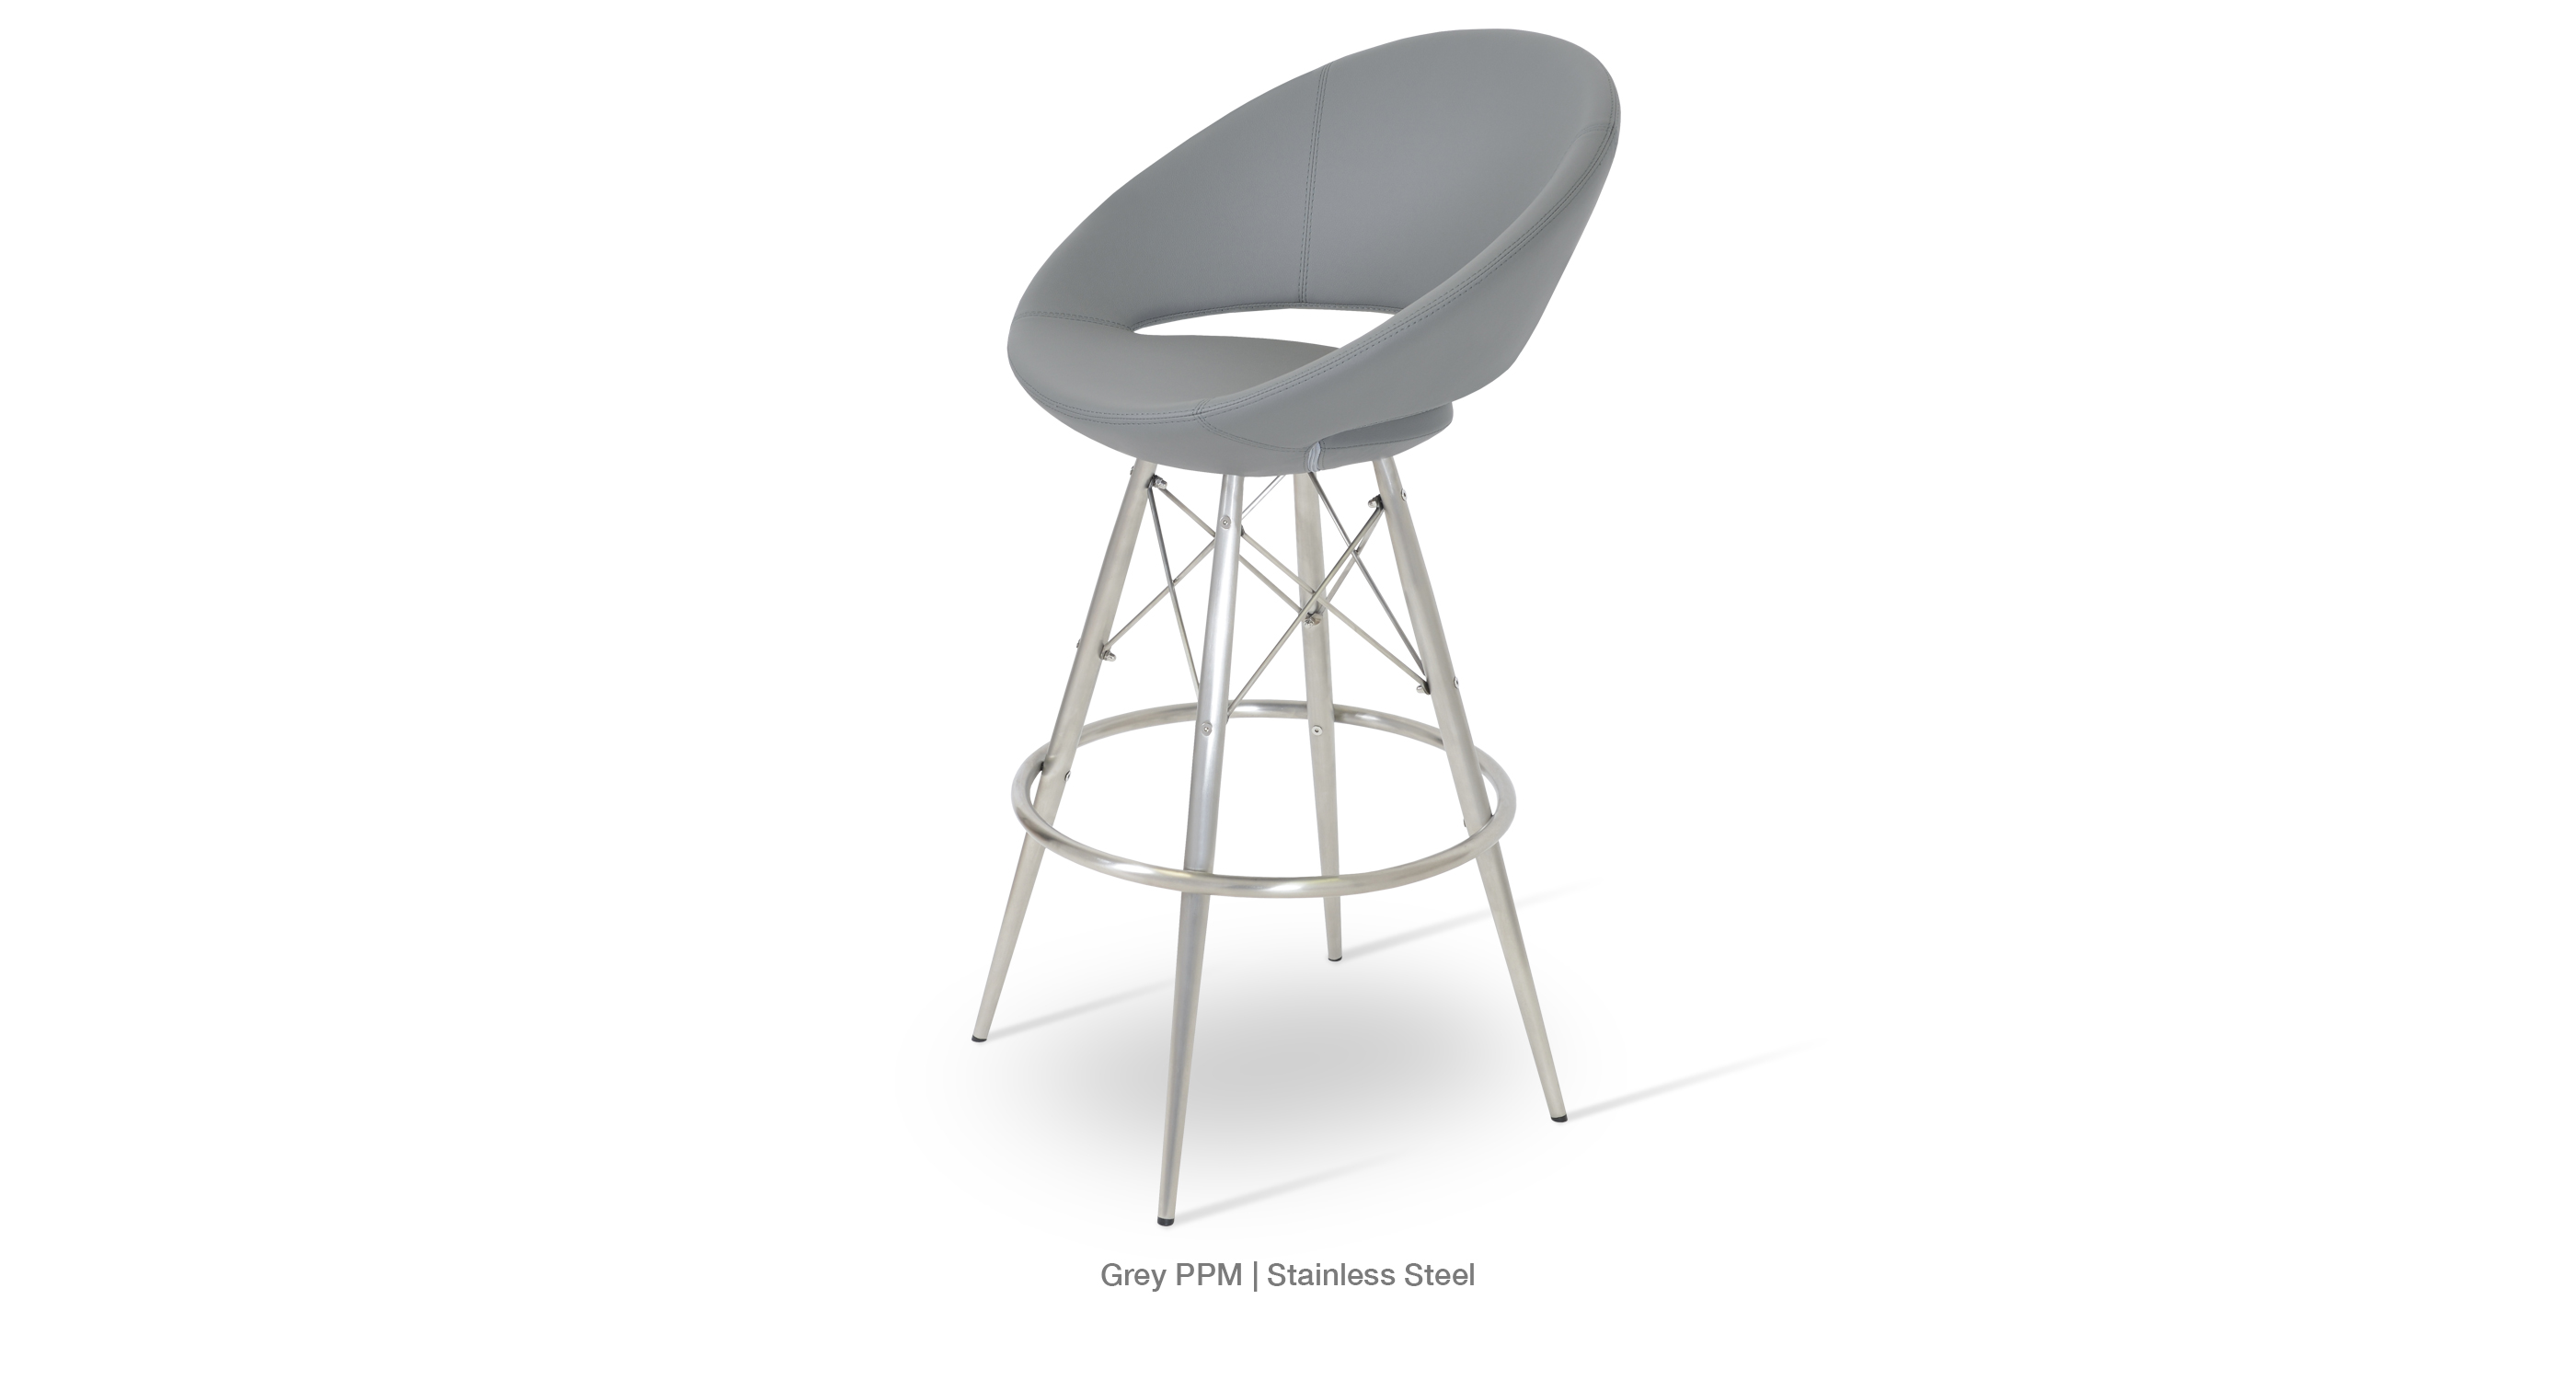 Crescent Mw Stool Grey Ppm